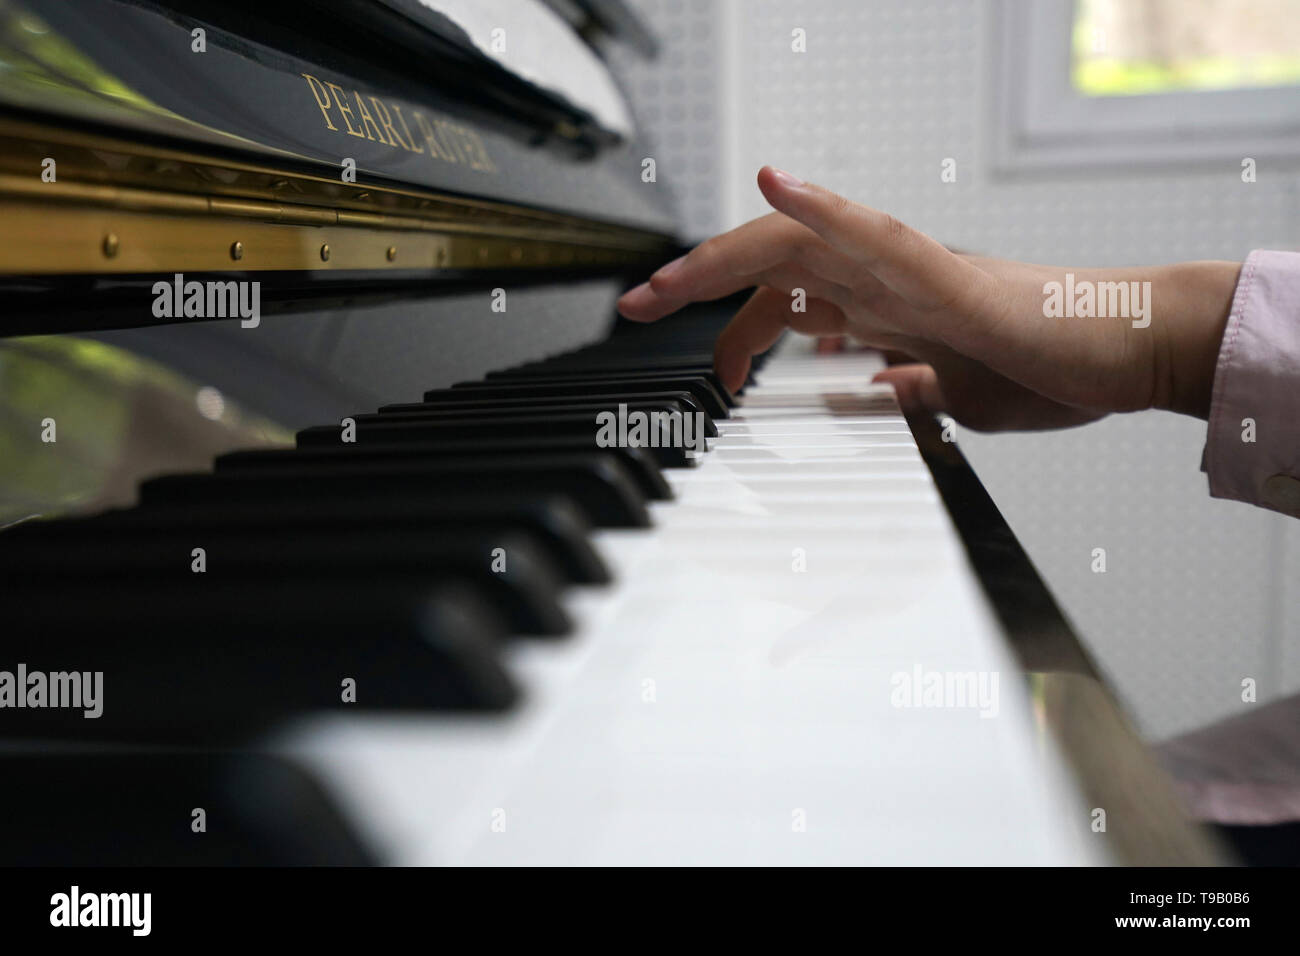 (190518) -- NANJING, May 18, 2019 (Xinhua) -- Zhou Wenqing plays the music composed by herself at the piano room in Nanjing Normal University of Special Education in Nanjing, east China's Jiangsu Province, May 17, 2019. Wu Yifan, 22, and Zhou Wenqing, 21, are schoolmates in Nanjing Normal University of Special Education. Both of them lost eyesight in their childhood.   In their spare time, Wu likes doing makeup, paper-cutting as well as playing the Guzheng, Chinese Zither. While Zhou enjoys playing the piano. Zhou once developed a computer game for visually impaired people.   The two girls hav - Stock Image